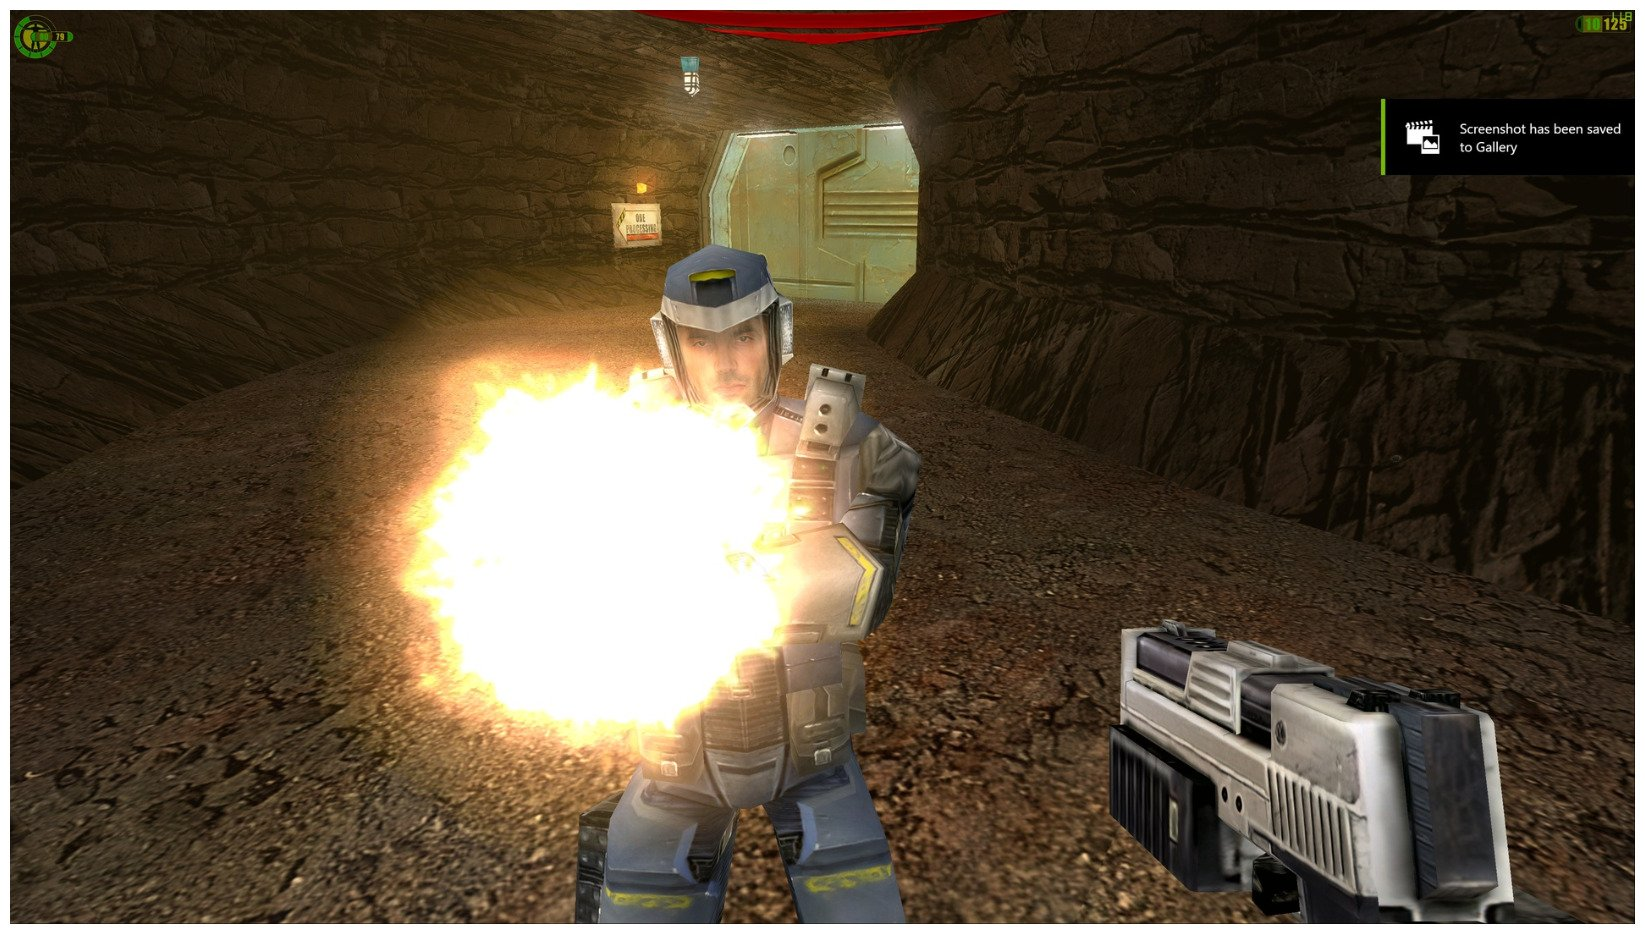 Image 5 : Red Faction transformé grâce à un pack de textures HD